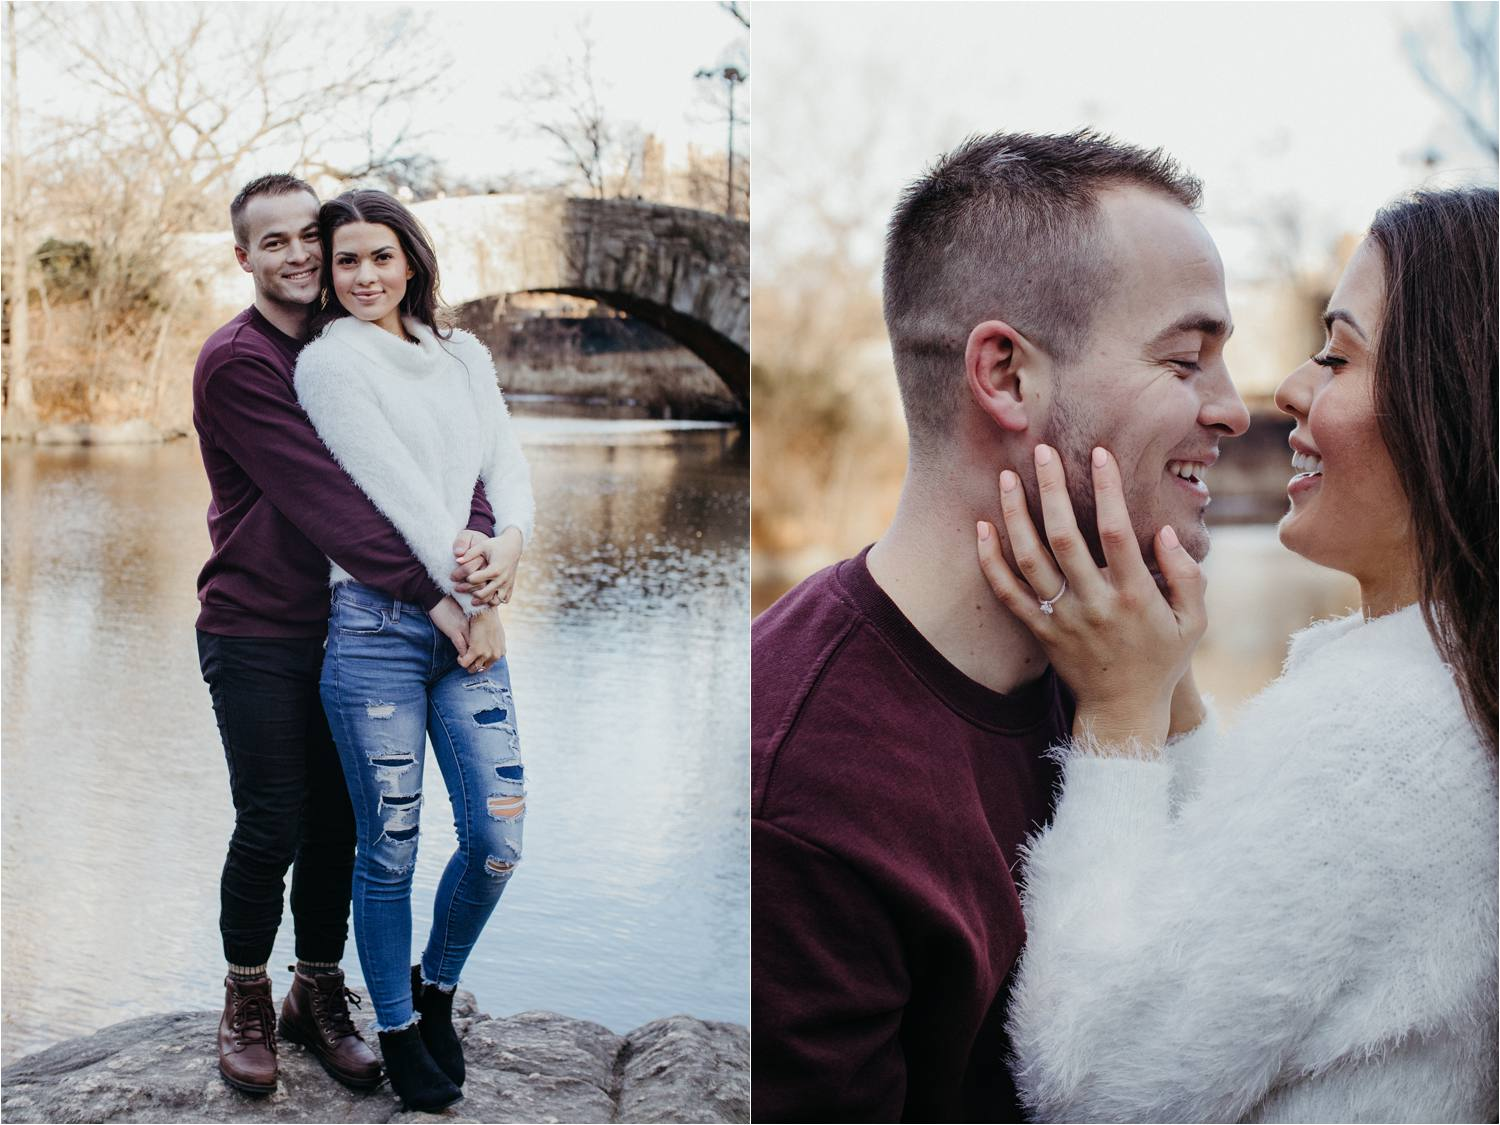 nyc winter engagement photos - winter engagement photos nyc - central park engagement photos - new york engagement photos - nyc engagement shoot